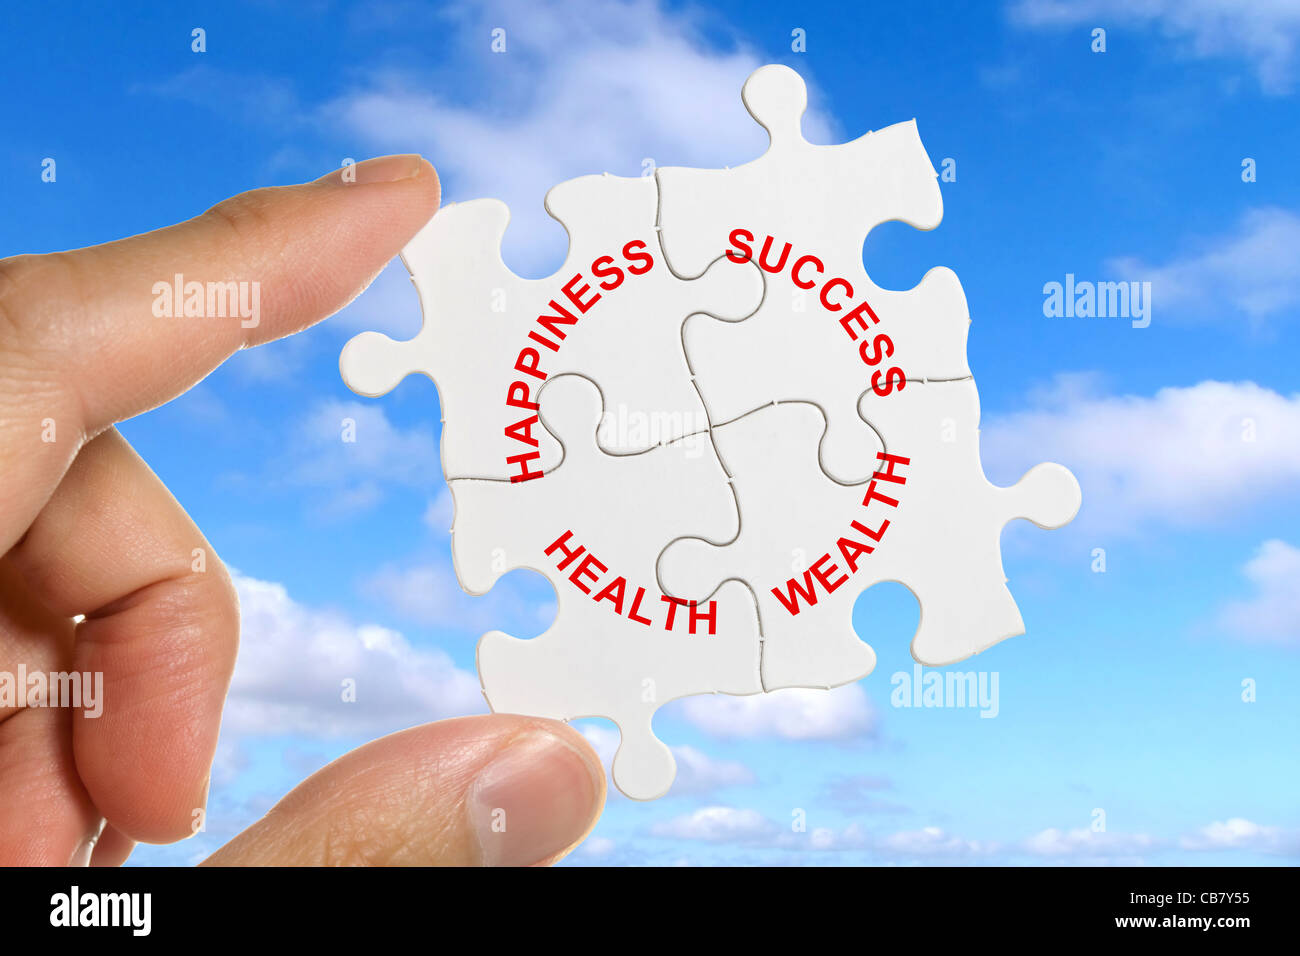 Puzzle, concept of Life Balance - Stock Image